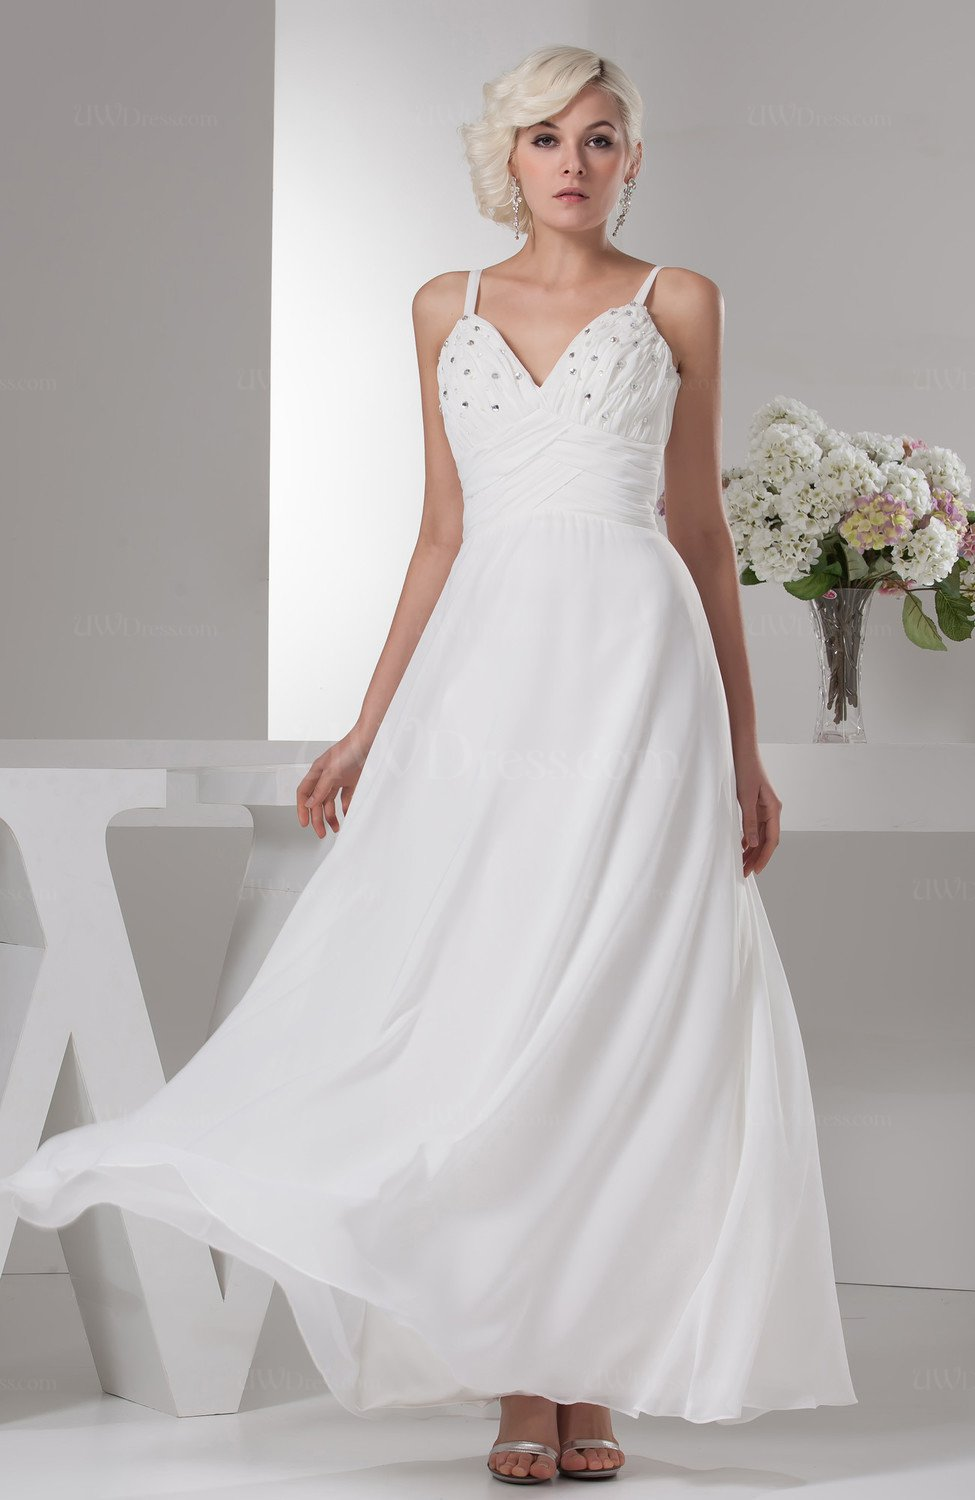 White Affordable Wedding Guest Dress Simple Summer Classy